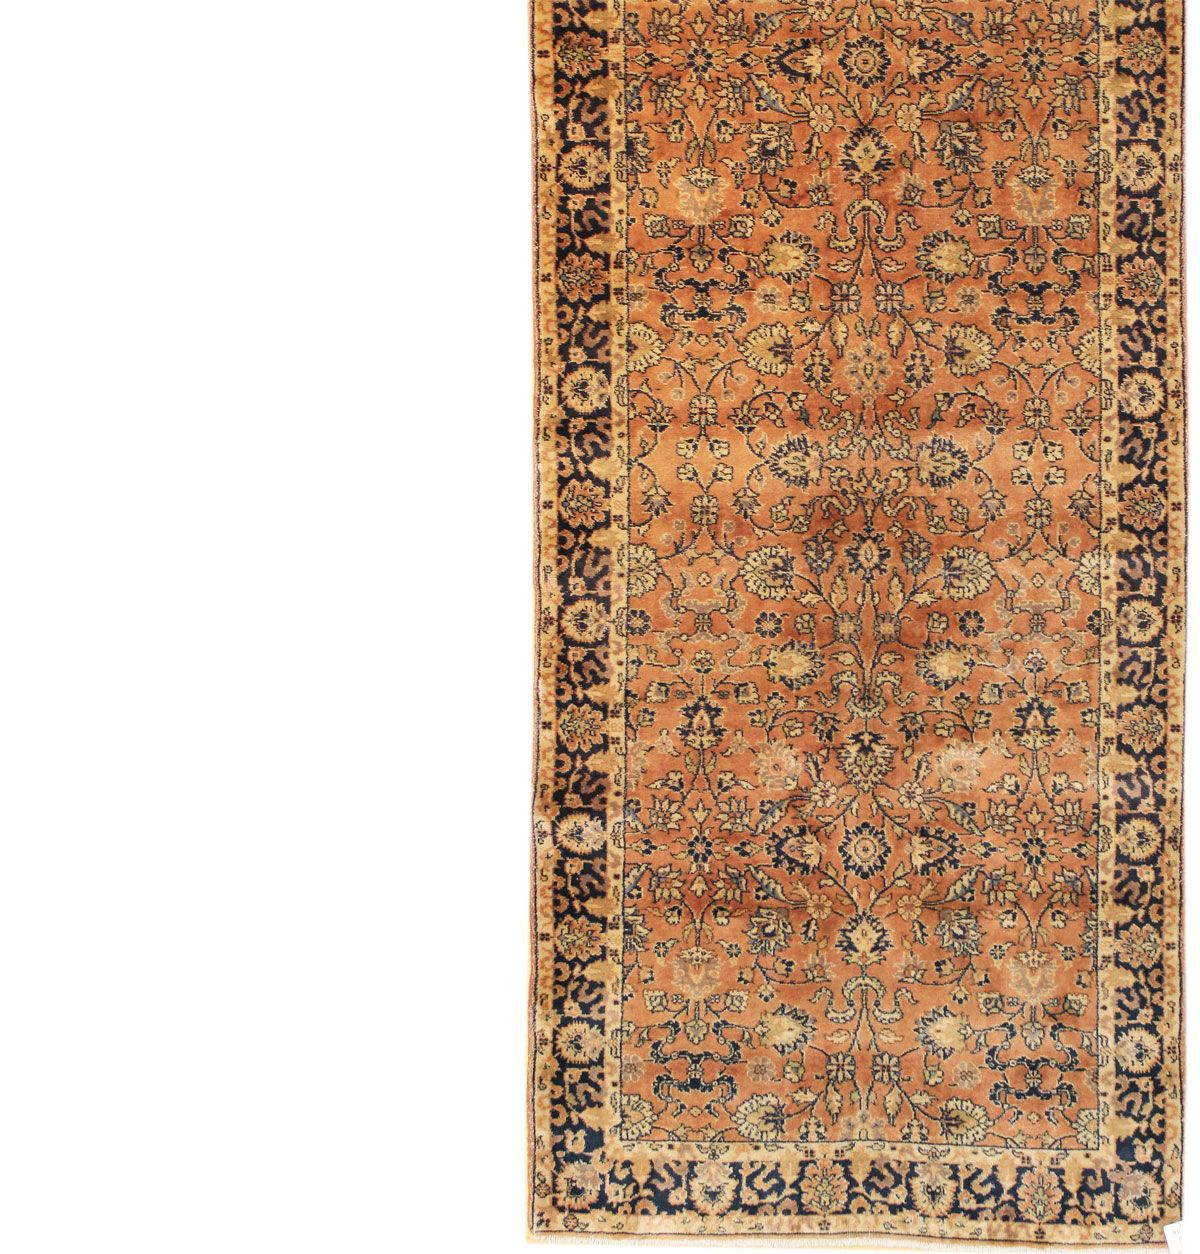 Oriental Rug Runners Wide Gallery Antique Kandahar Wide Runner Hand Knotted In India Size 4 Feet 7 Inch Es X 16 Feet 4 Inch Es Tapetes